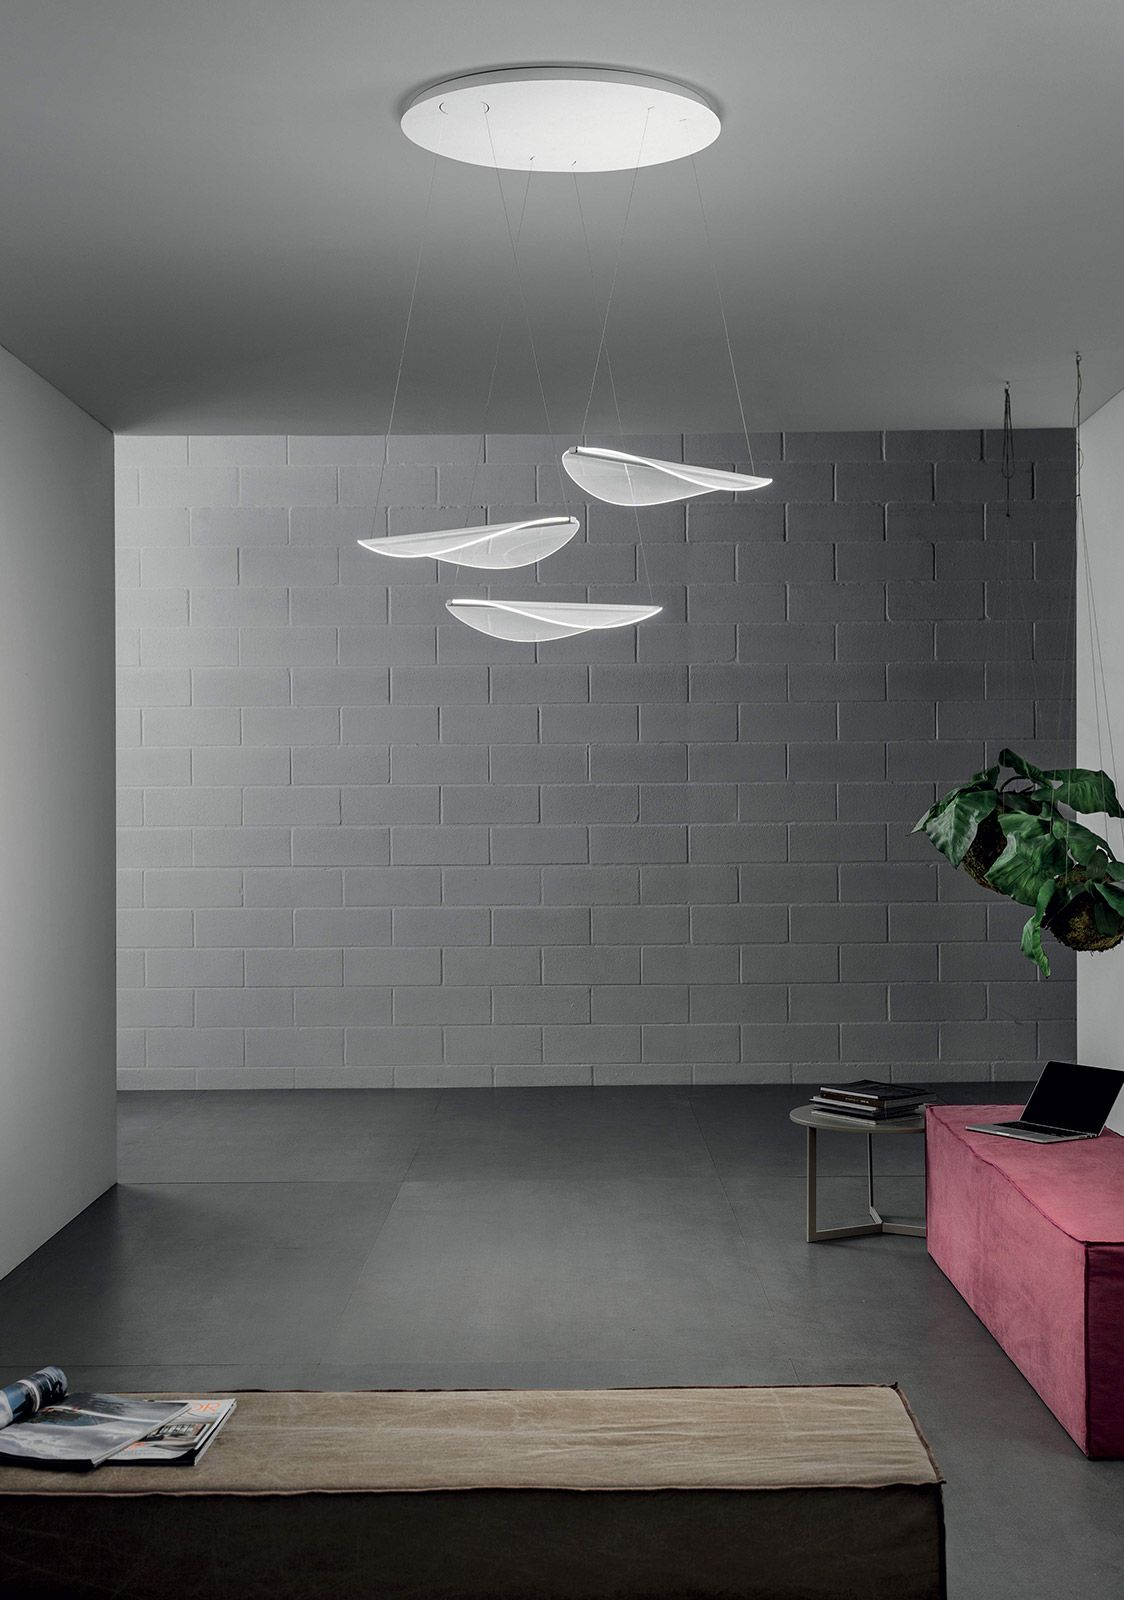 new pendant lighting. Discover Diphy In The New Catalogue Material \u0026 Design Lighting By Linea Light Group #LED Pendant